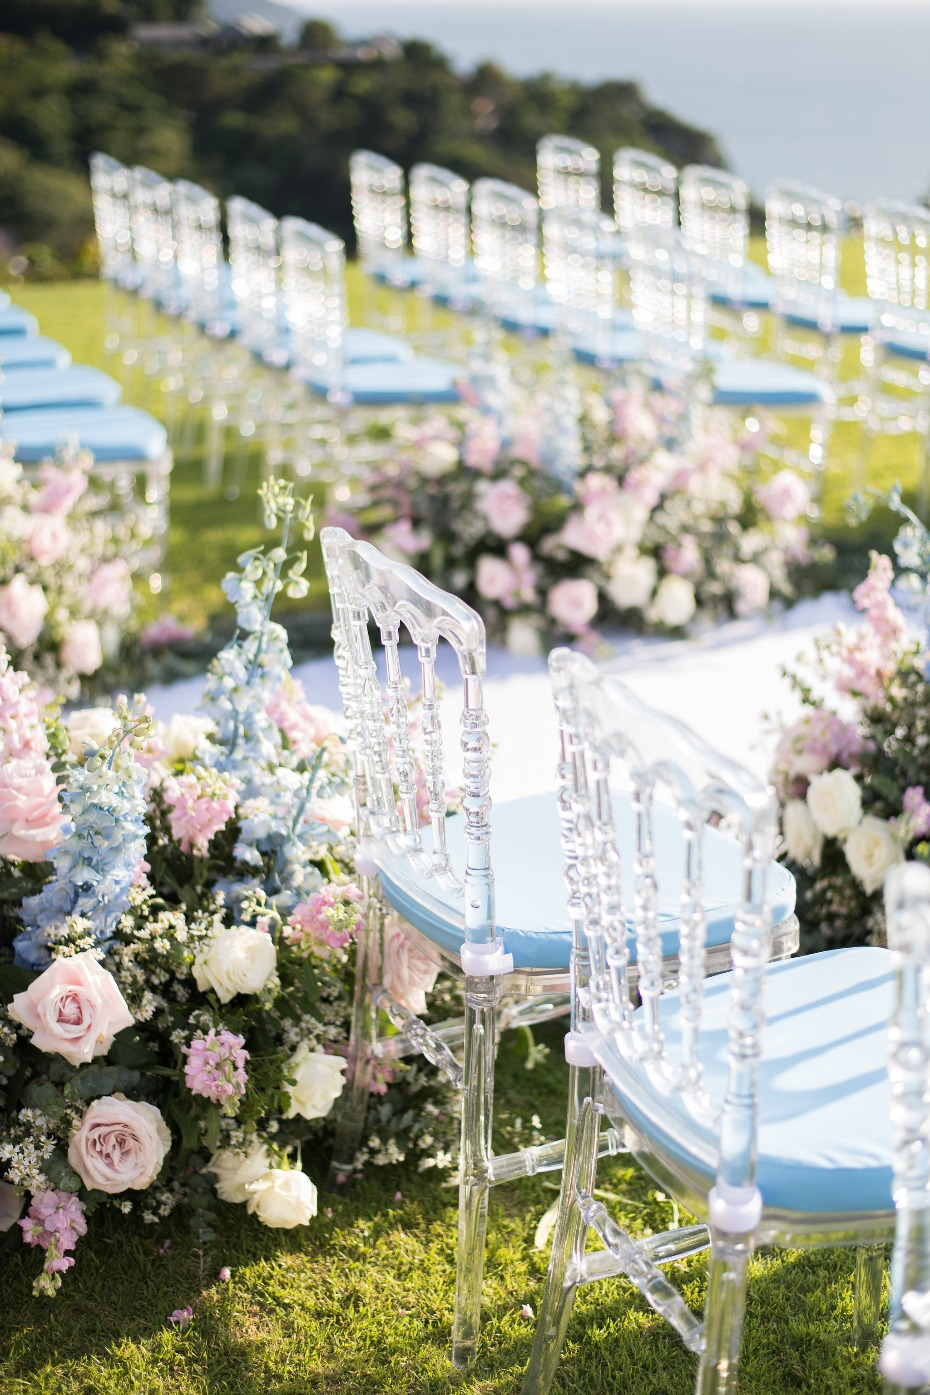 Crystal chairs for ceremony